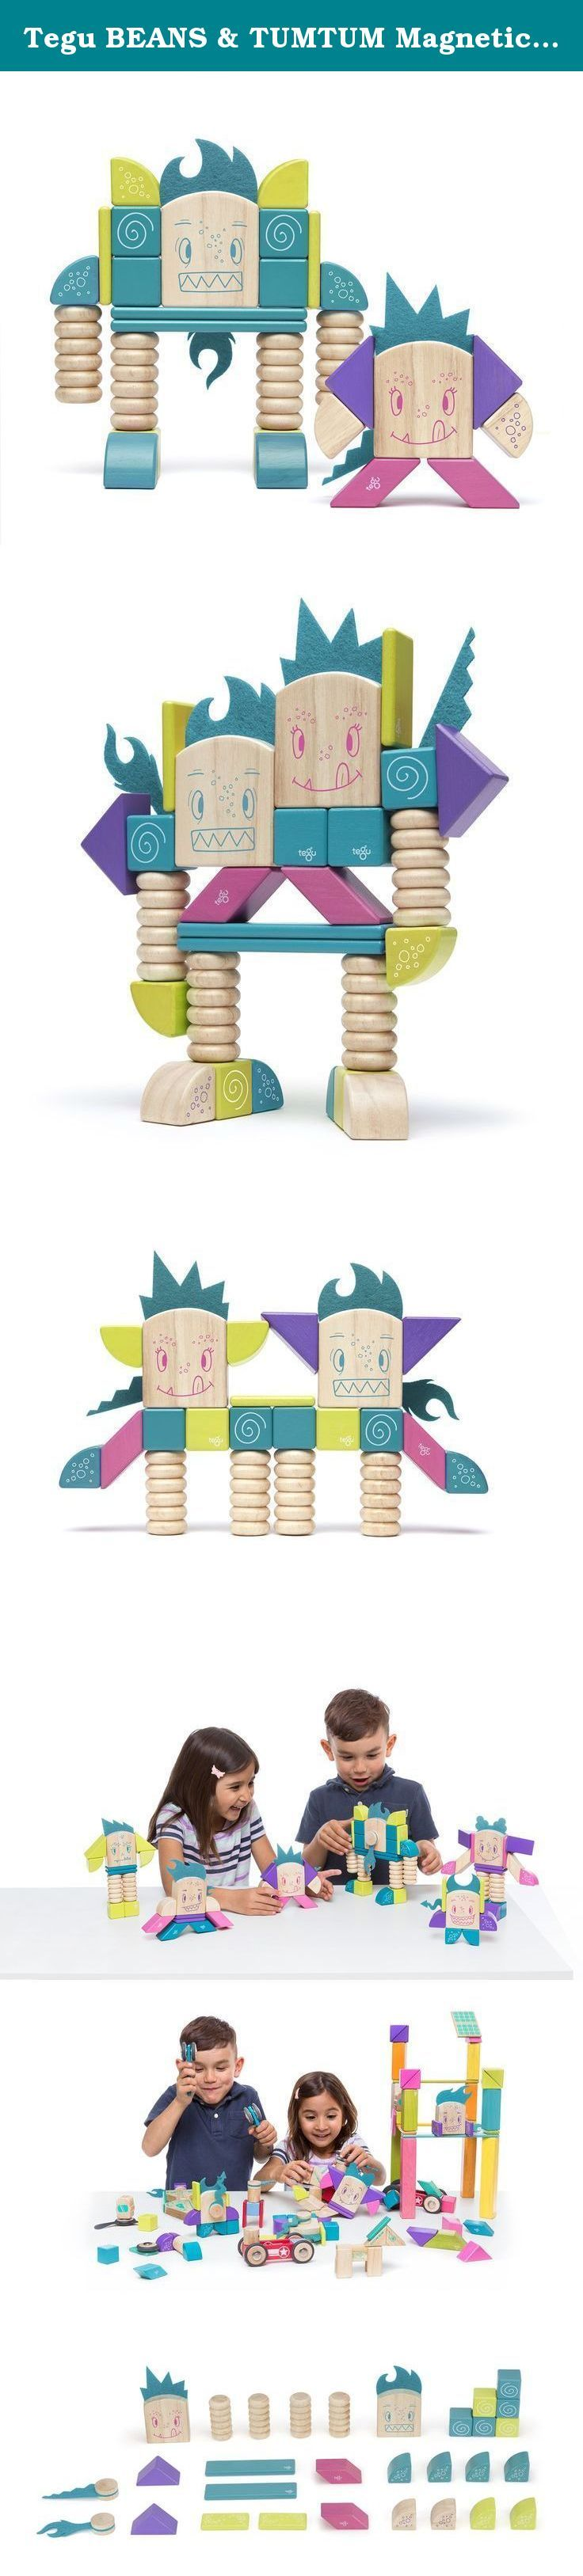 Tegu BEANS & TUMTUM Magnetic Wooden Block Set. Tegu Sticky Monsters are a cozy group of friends with rambunctious personalities. Whether listening quietly or devising the perfect prank, this chummy troupe of scallywags always STICKS together (and to fridges, washing machines, spoons.). With compatible magnetic wooden shapes and complementary personalities, they join forces to bring out the best in one another, just like all great friends! Designed in the USA, purposefully made in Honduras...